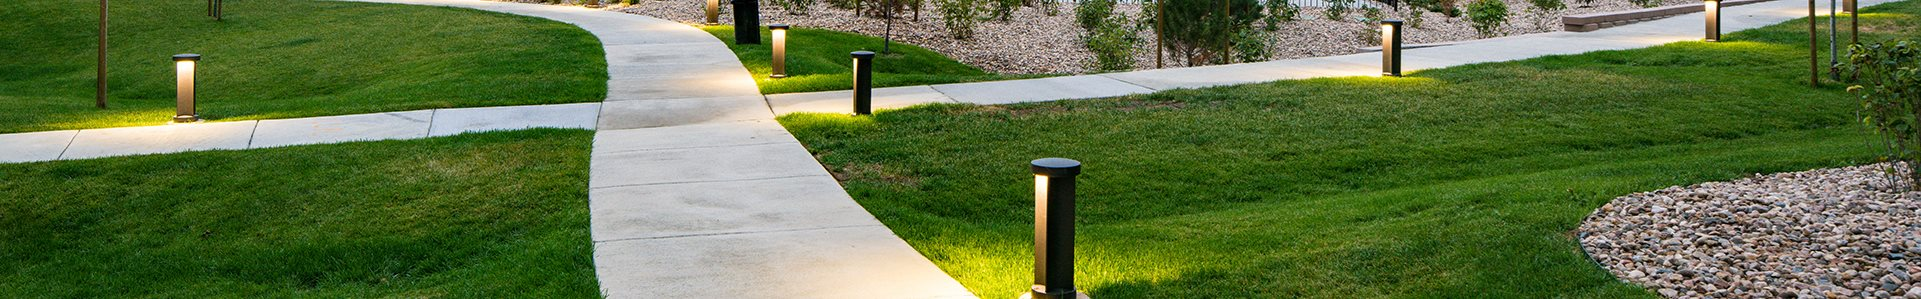 Lite Pathway with Grass 110 Copper Wood LN SE Lacey WA 98516 Copper Wood Apts For Rent